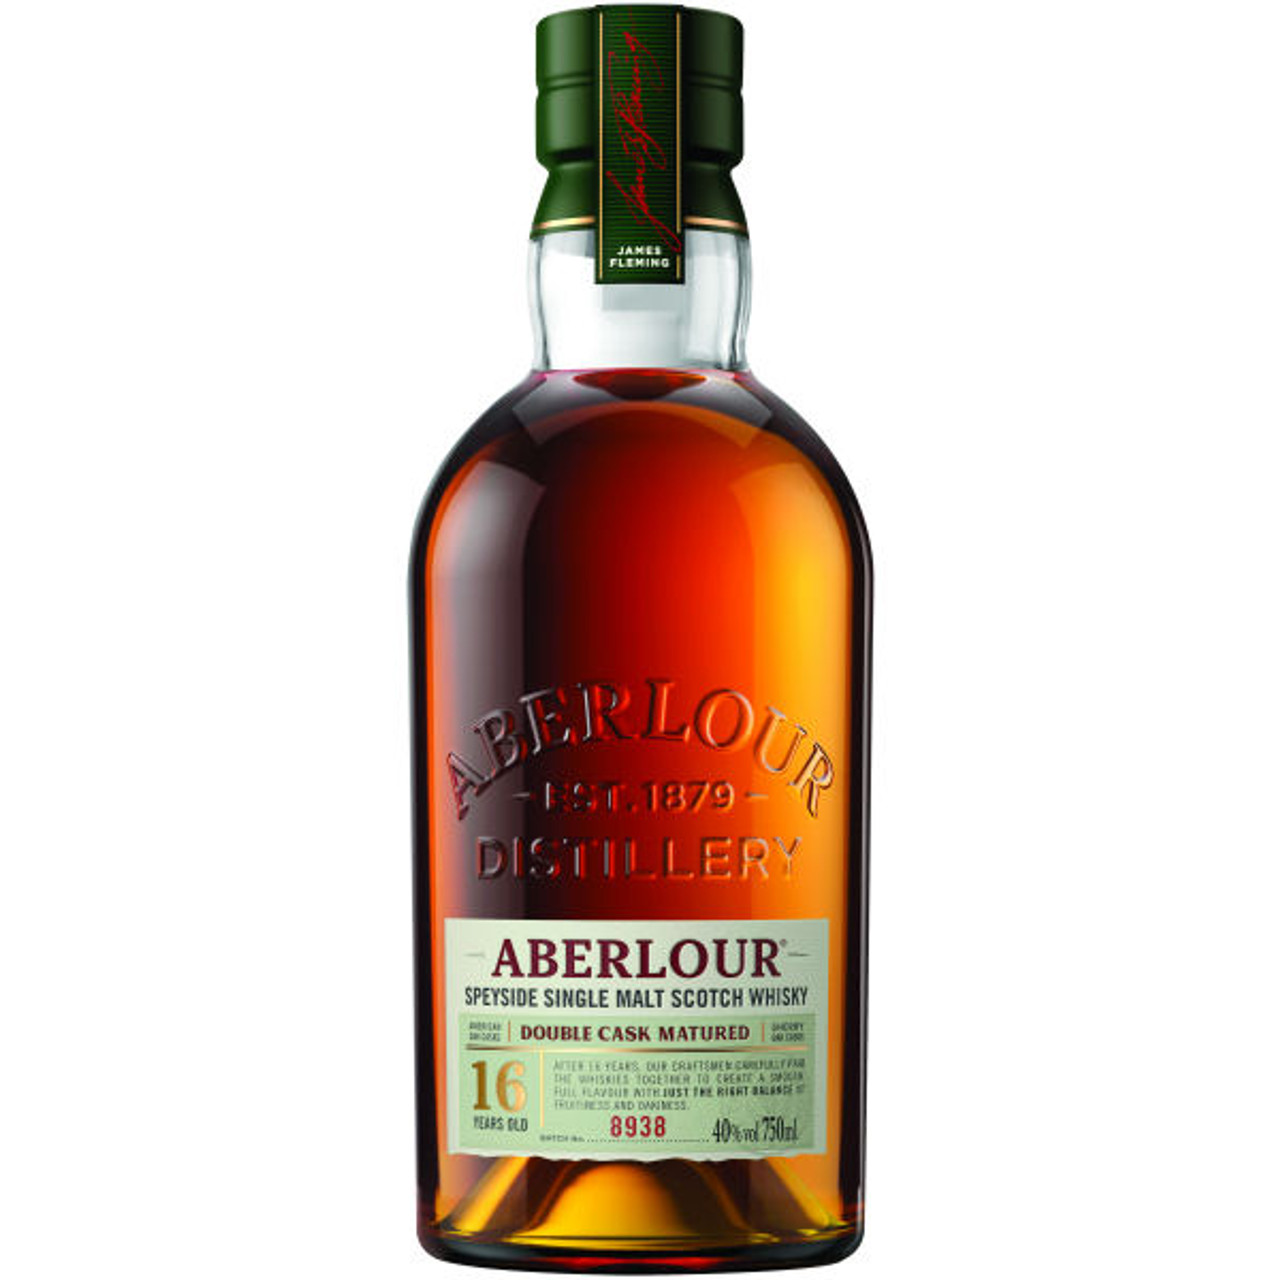 Aberlour 16 Year Old Double Cask Matured Highland 750ml